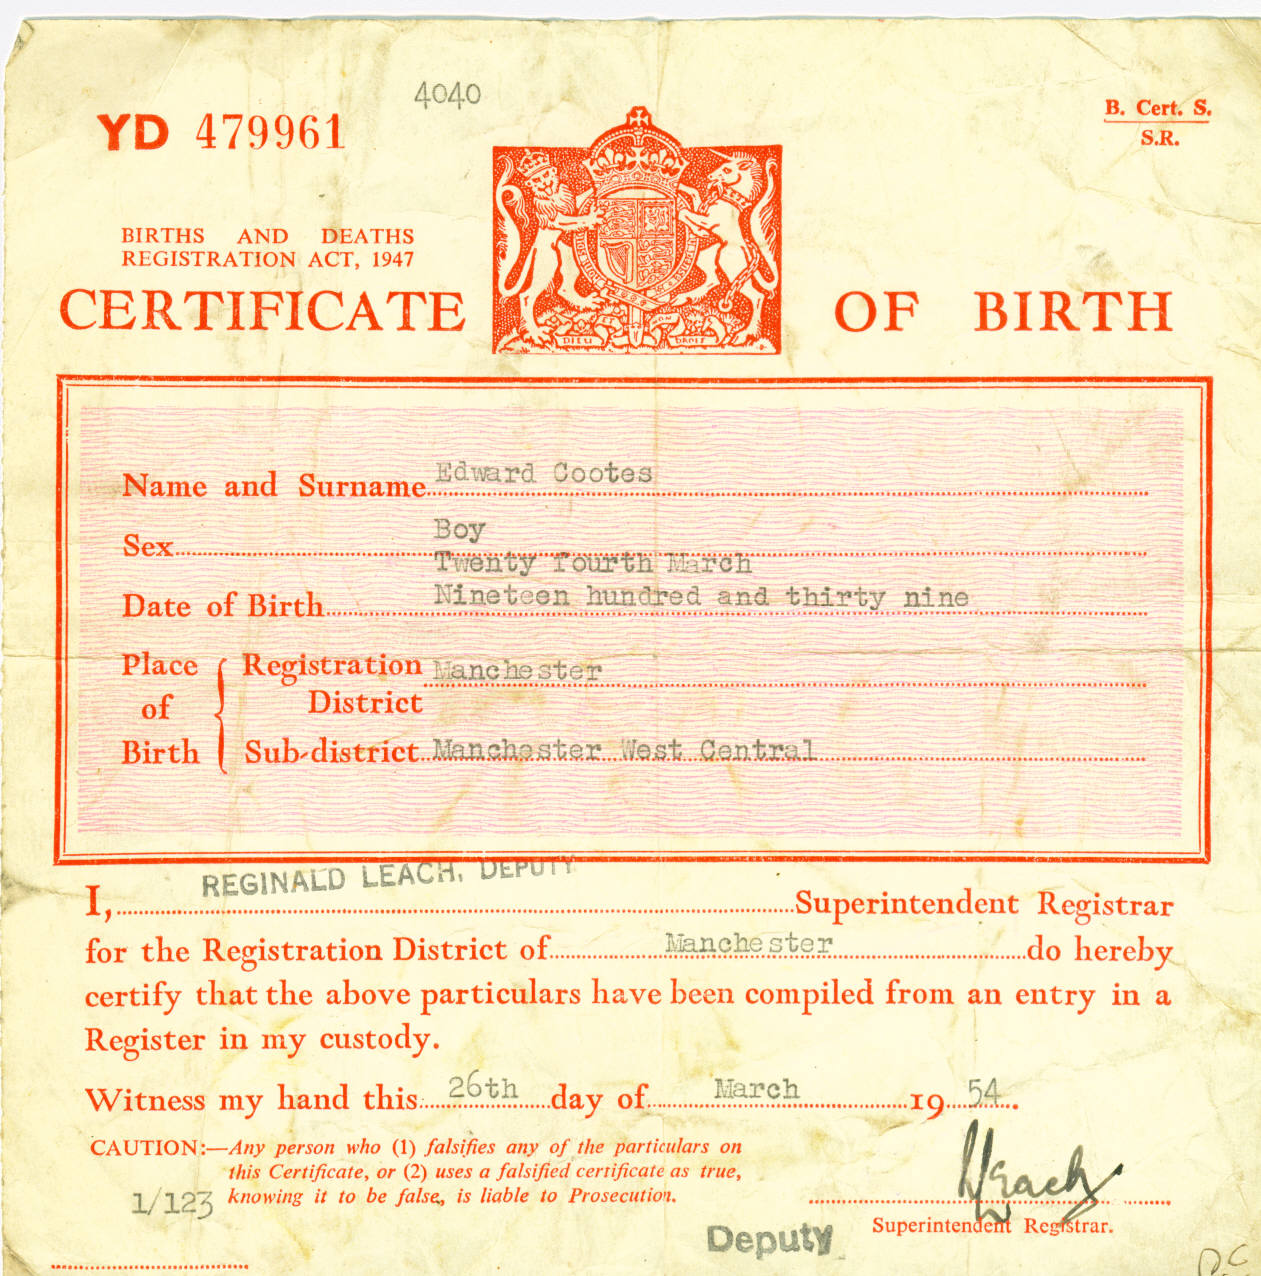 Cootes Family Tree Gro Short Birth Certificate 1939 Edward Cootes